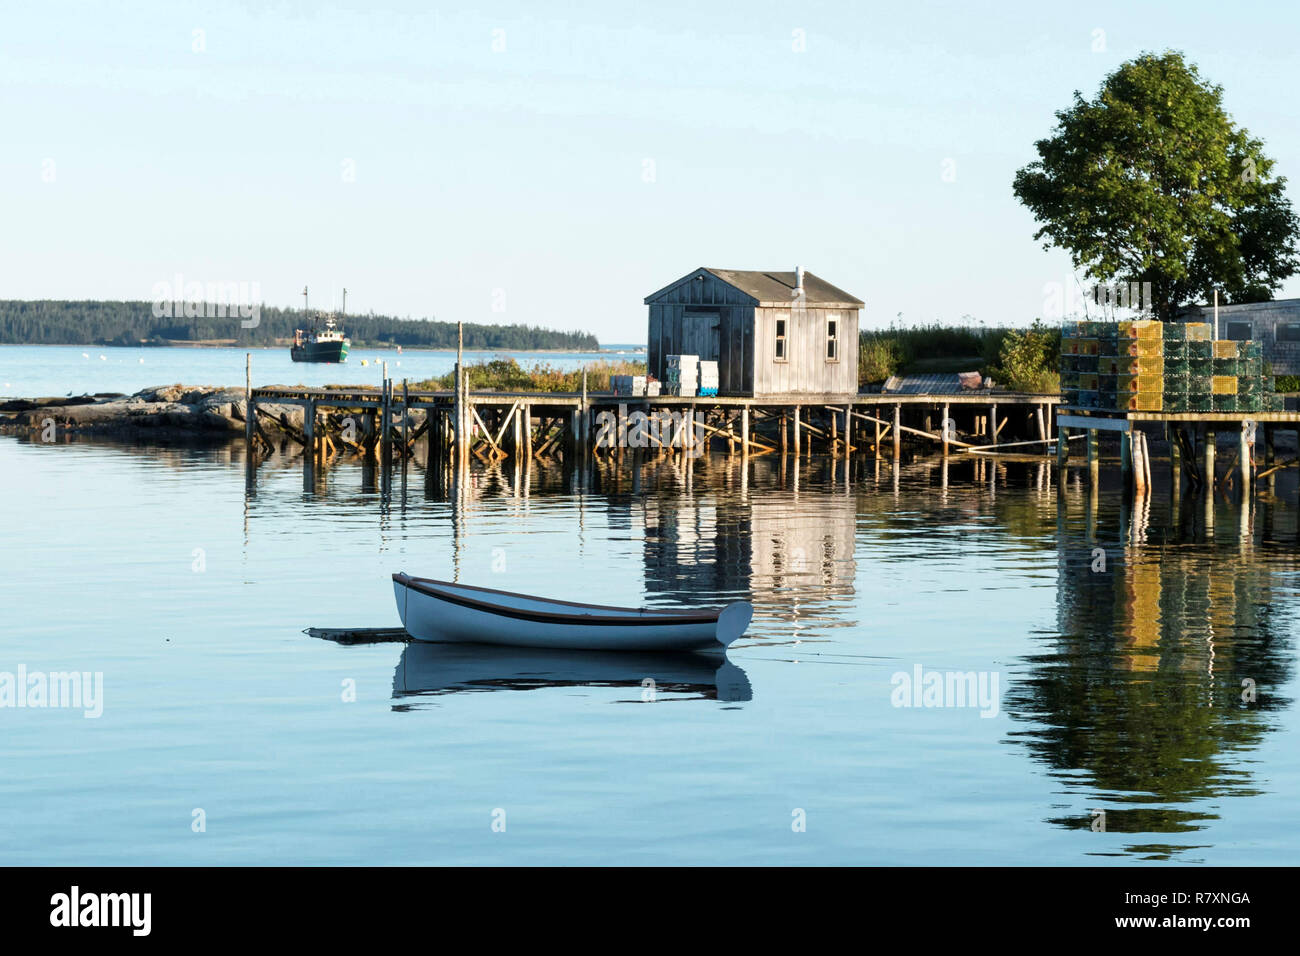 View of Bass Harbor Maine from the deck of Thurston's Lobster pound with a dock, lobster traps, boat house, tree and row boat reflections visible. Stock Photo